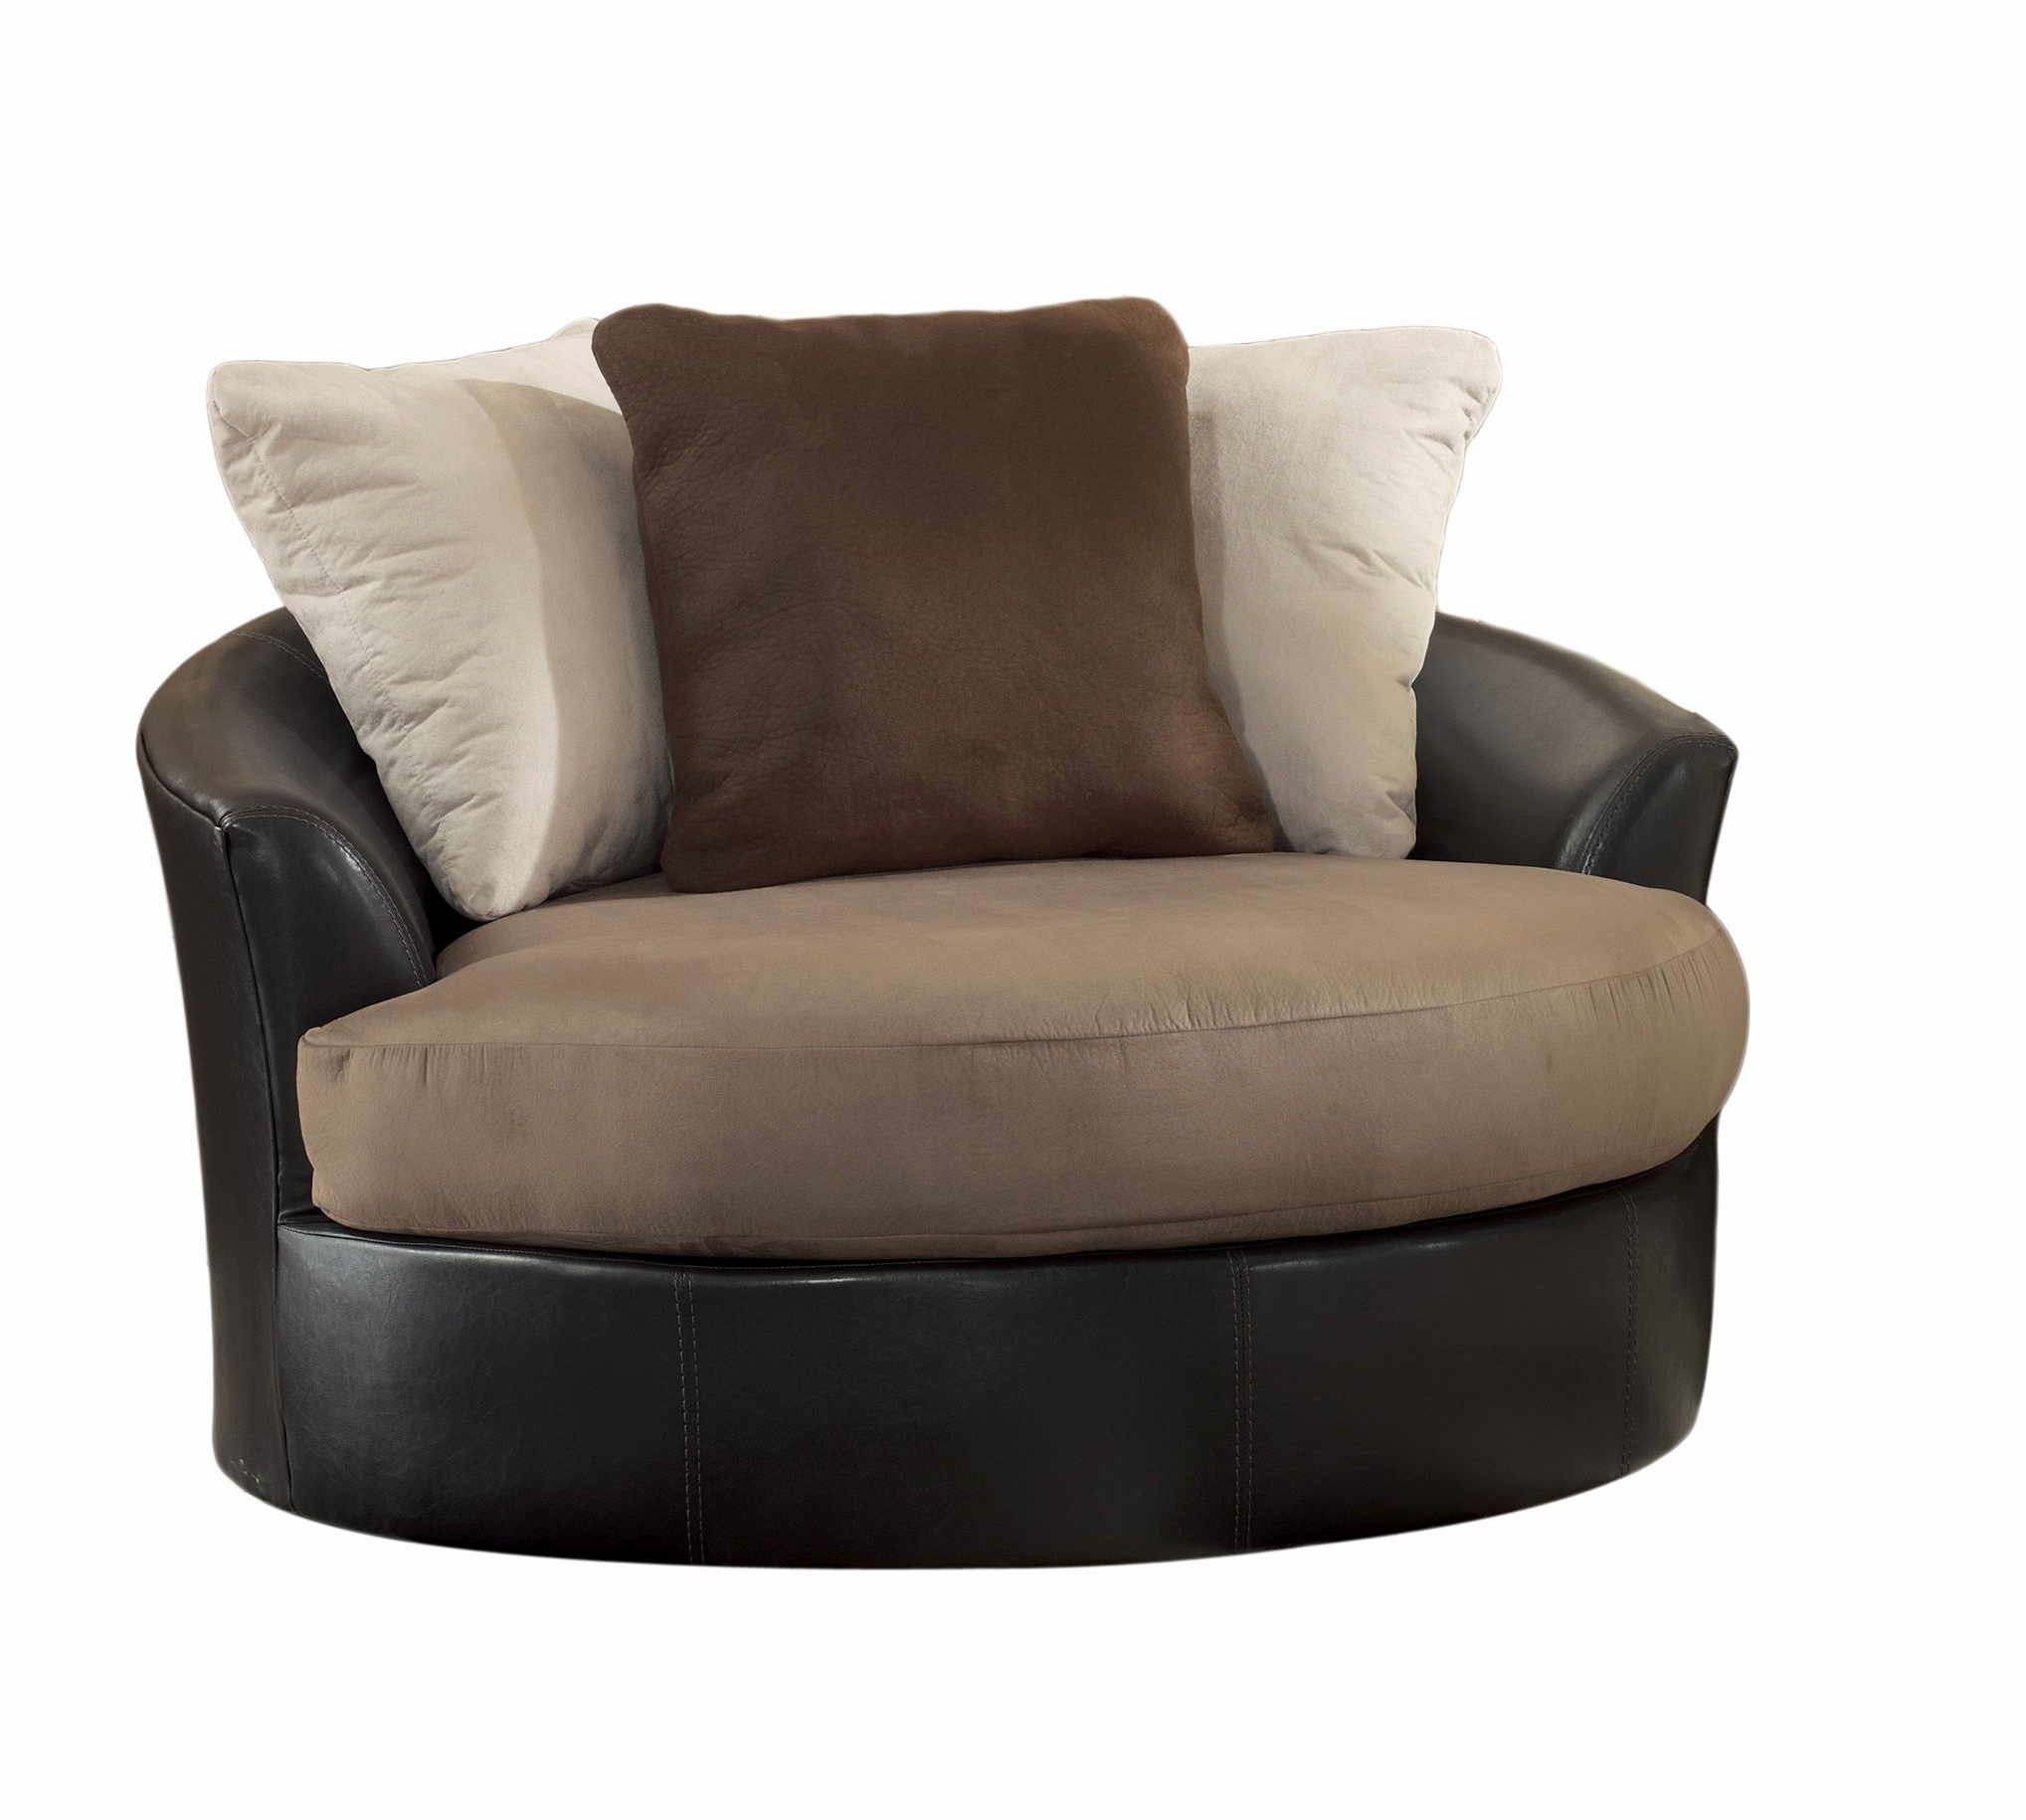 Unique Armchairs 10 Inspirations Sofas With Swivel Chair Sofa Ideas